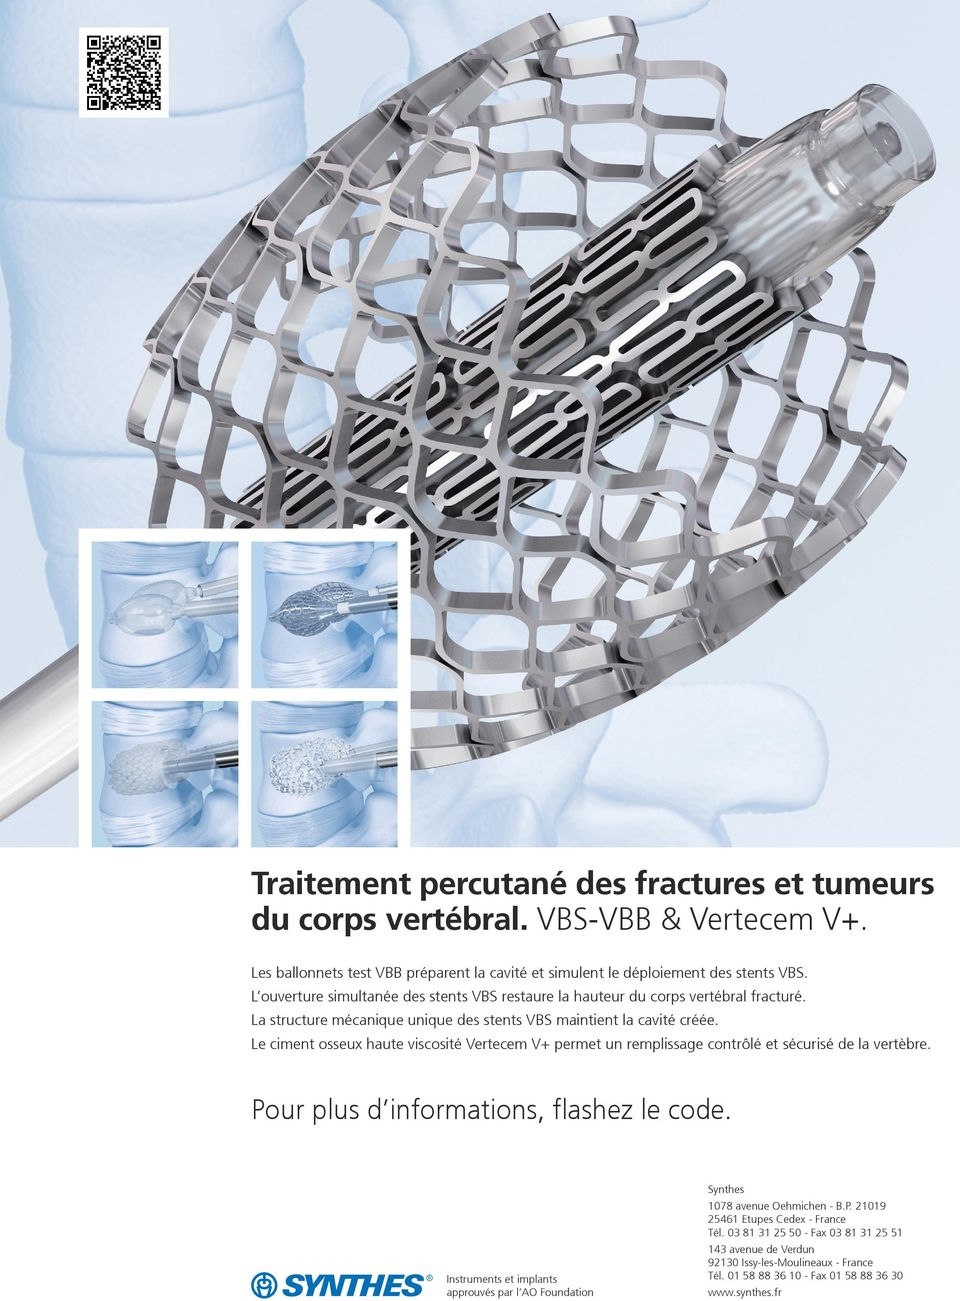 Le ciment osseux haute viscosité Vertecem V+ permet un remplissage contrôlé et sécurisé de la vertèbre. Pour plus d informations, flashez le code. Synthes 1078 avenue Oehmichen - B.P. 21019 25461 Etupes Cedex - France Tél.